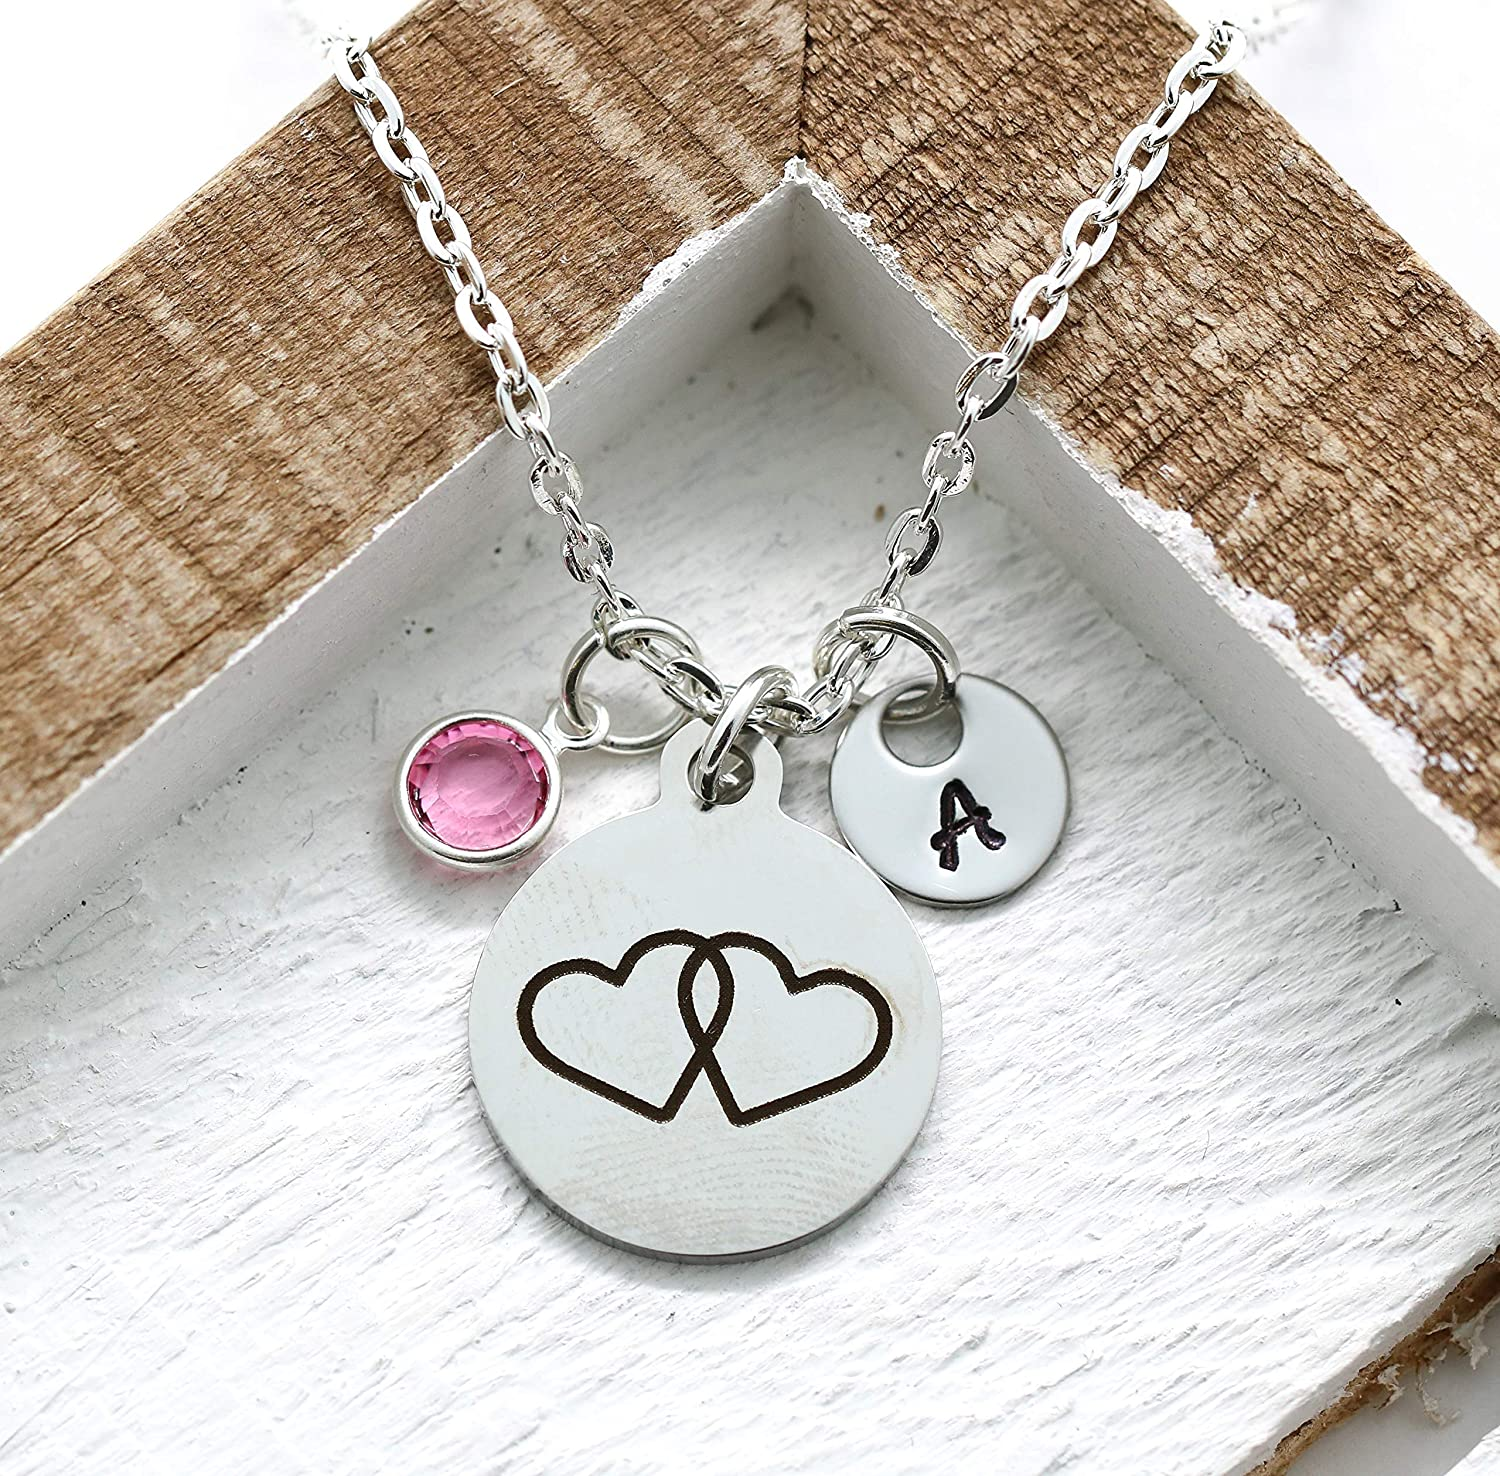 Personalized Wife Girlfriend Necklace for Her Valentines Birthday  Gift Double Hearts  Necklace for Women with Message  Card